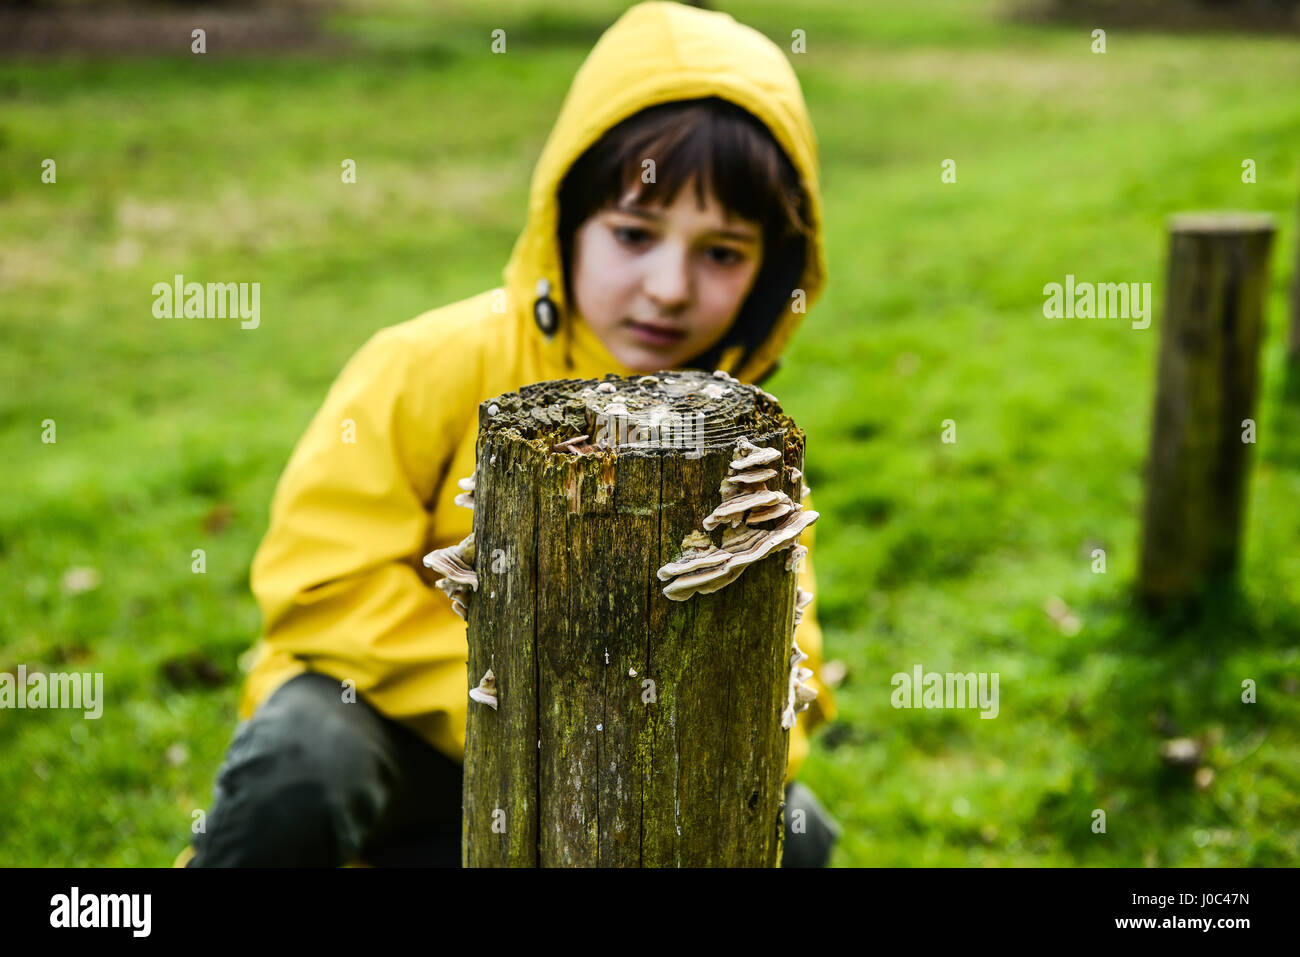 Boy in yellow anorak looking at park fencepost - Stock Image